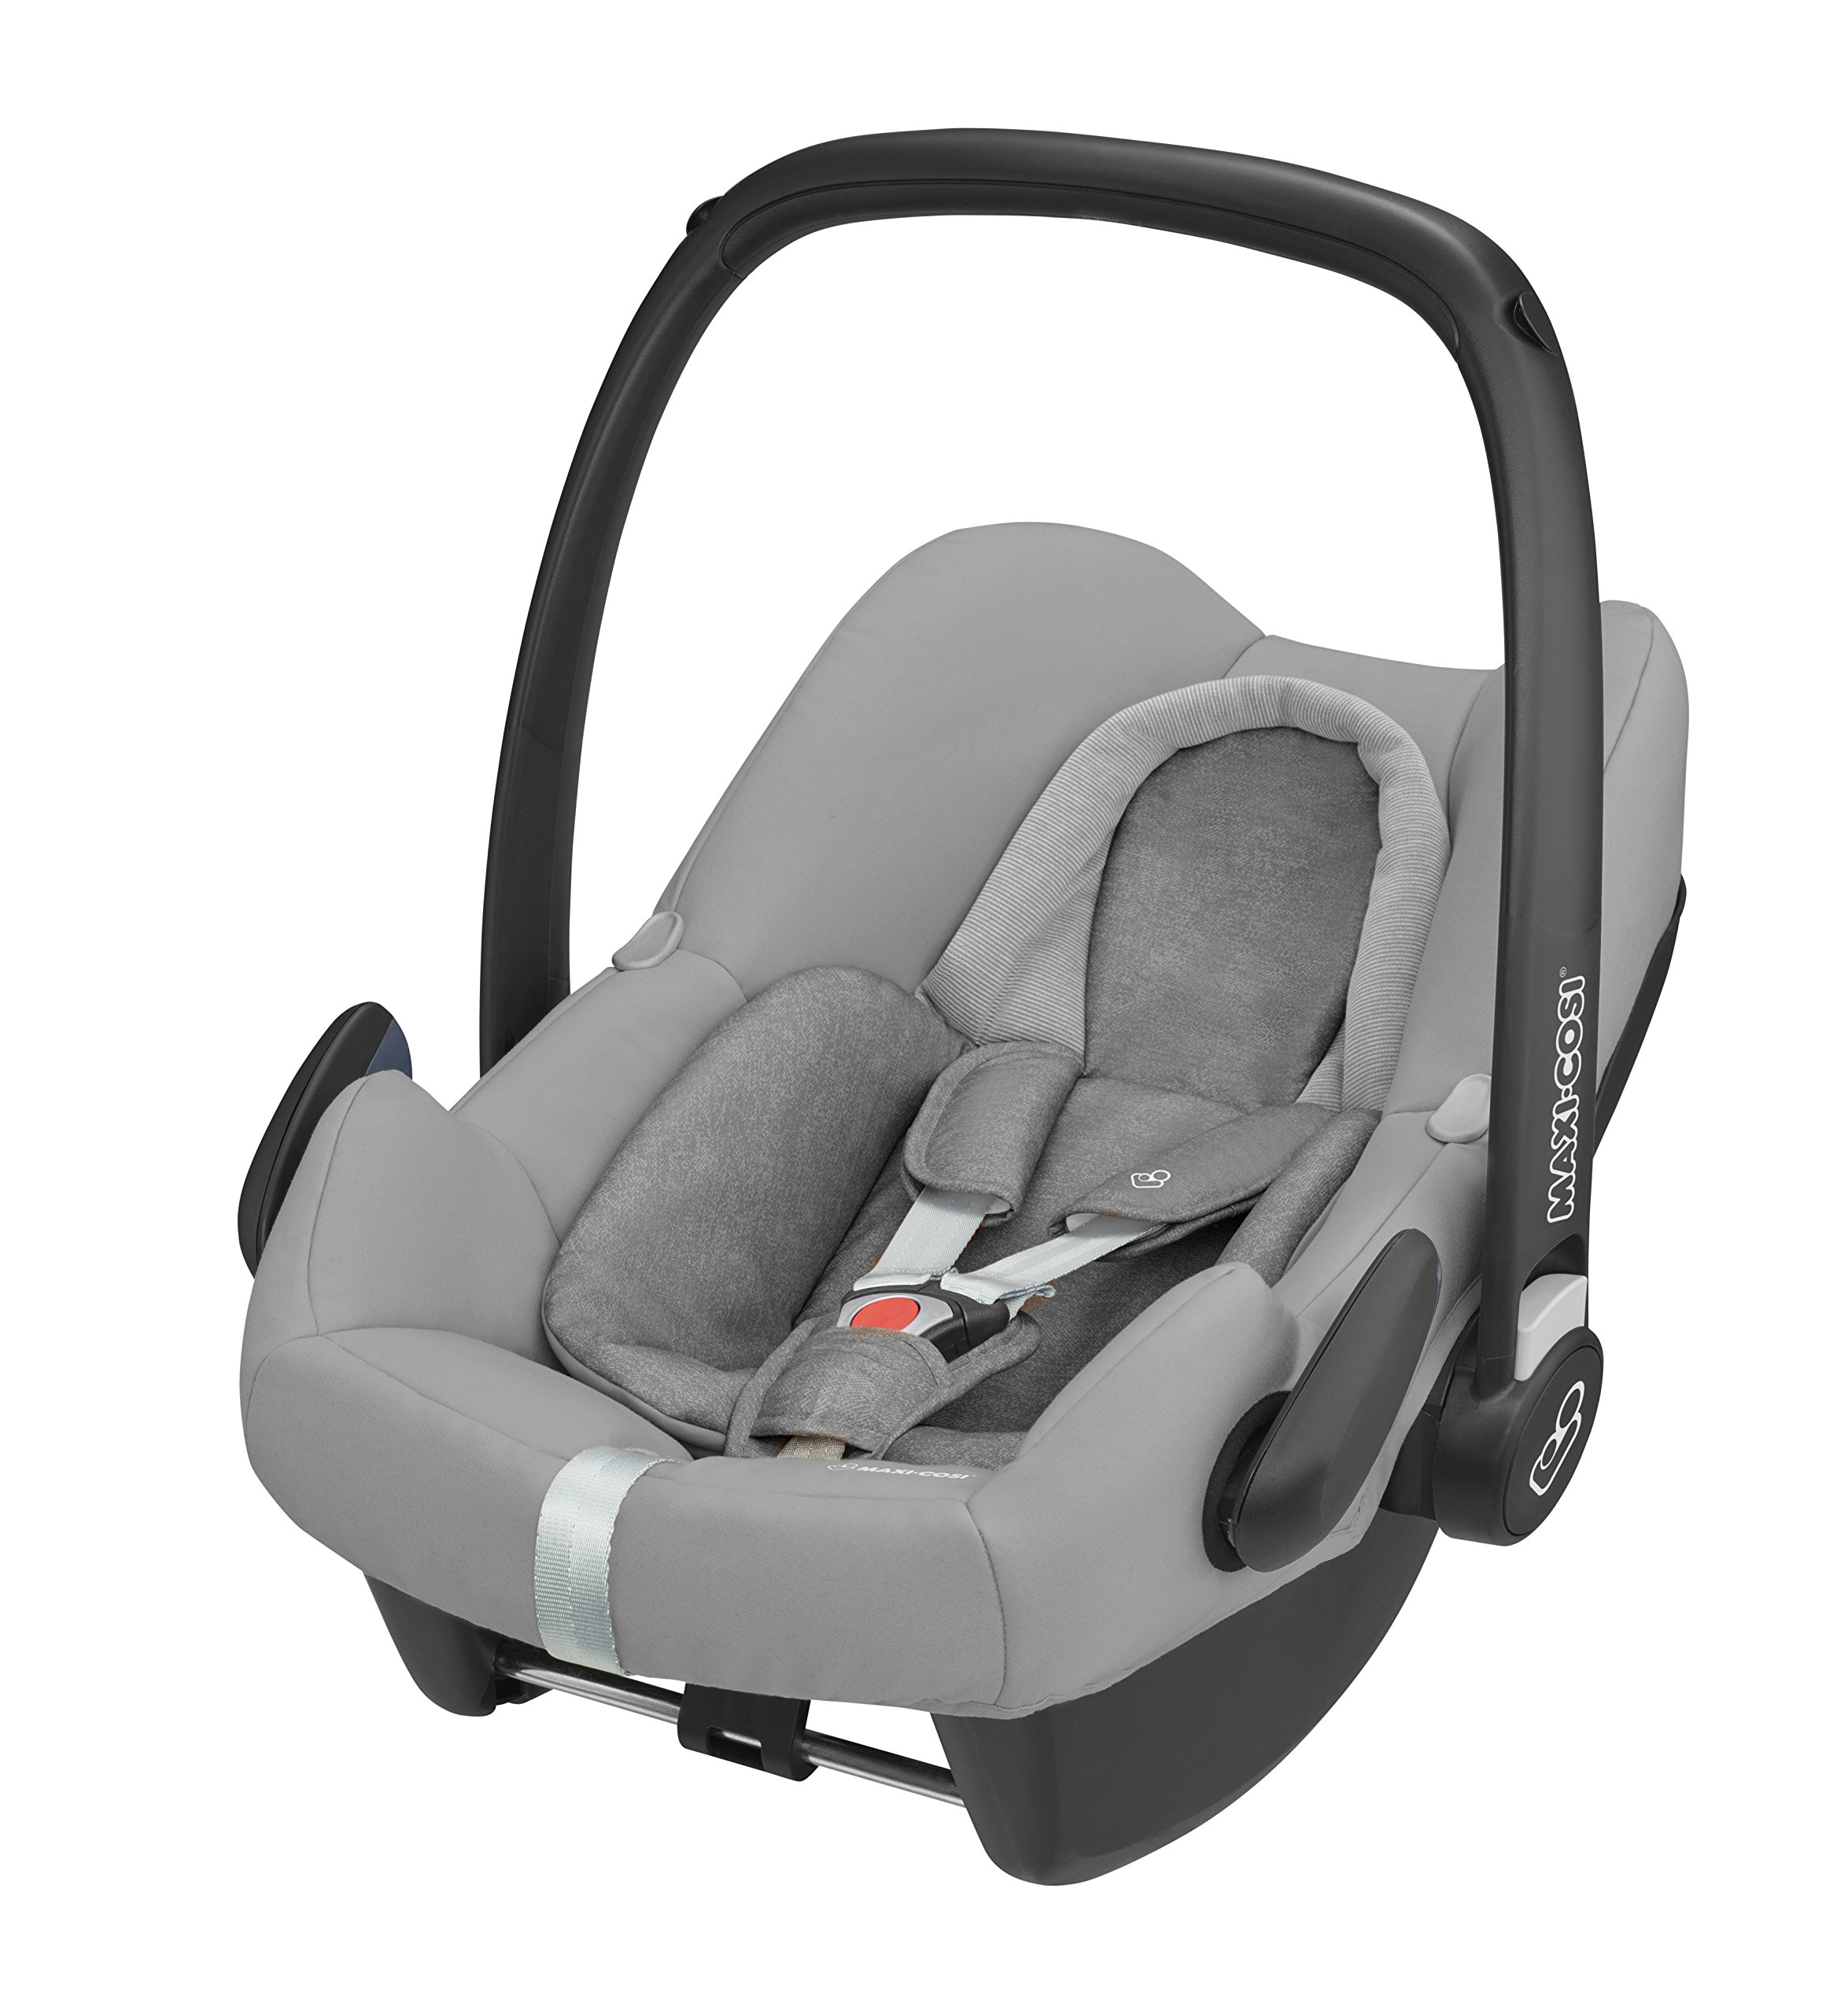 Maxi-Cosi Rock i-Size Baby Car Seat, Nomad Grey with Raincover for Baby Car Seat, Transparent and Back Seat Car Mirror Maxi-Cosi High safety rating: complies with the latest i-Size (R129) car seat legislation Baby-hug inlay offers a better fit and laying position for new-born's Designed to fit onto the maxi-cosi pebble plus, pebble and cabriofix baby car seats 2